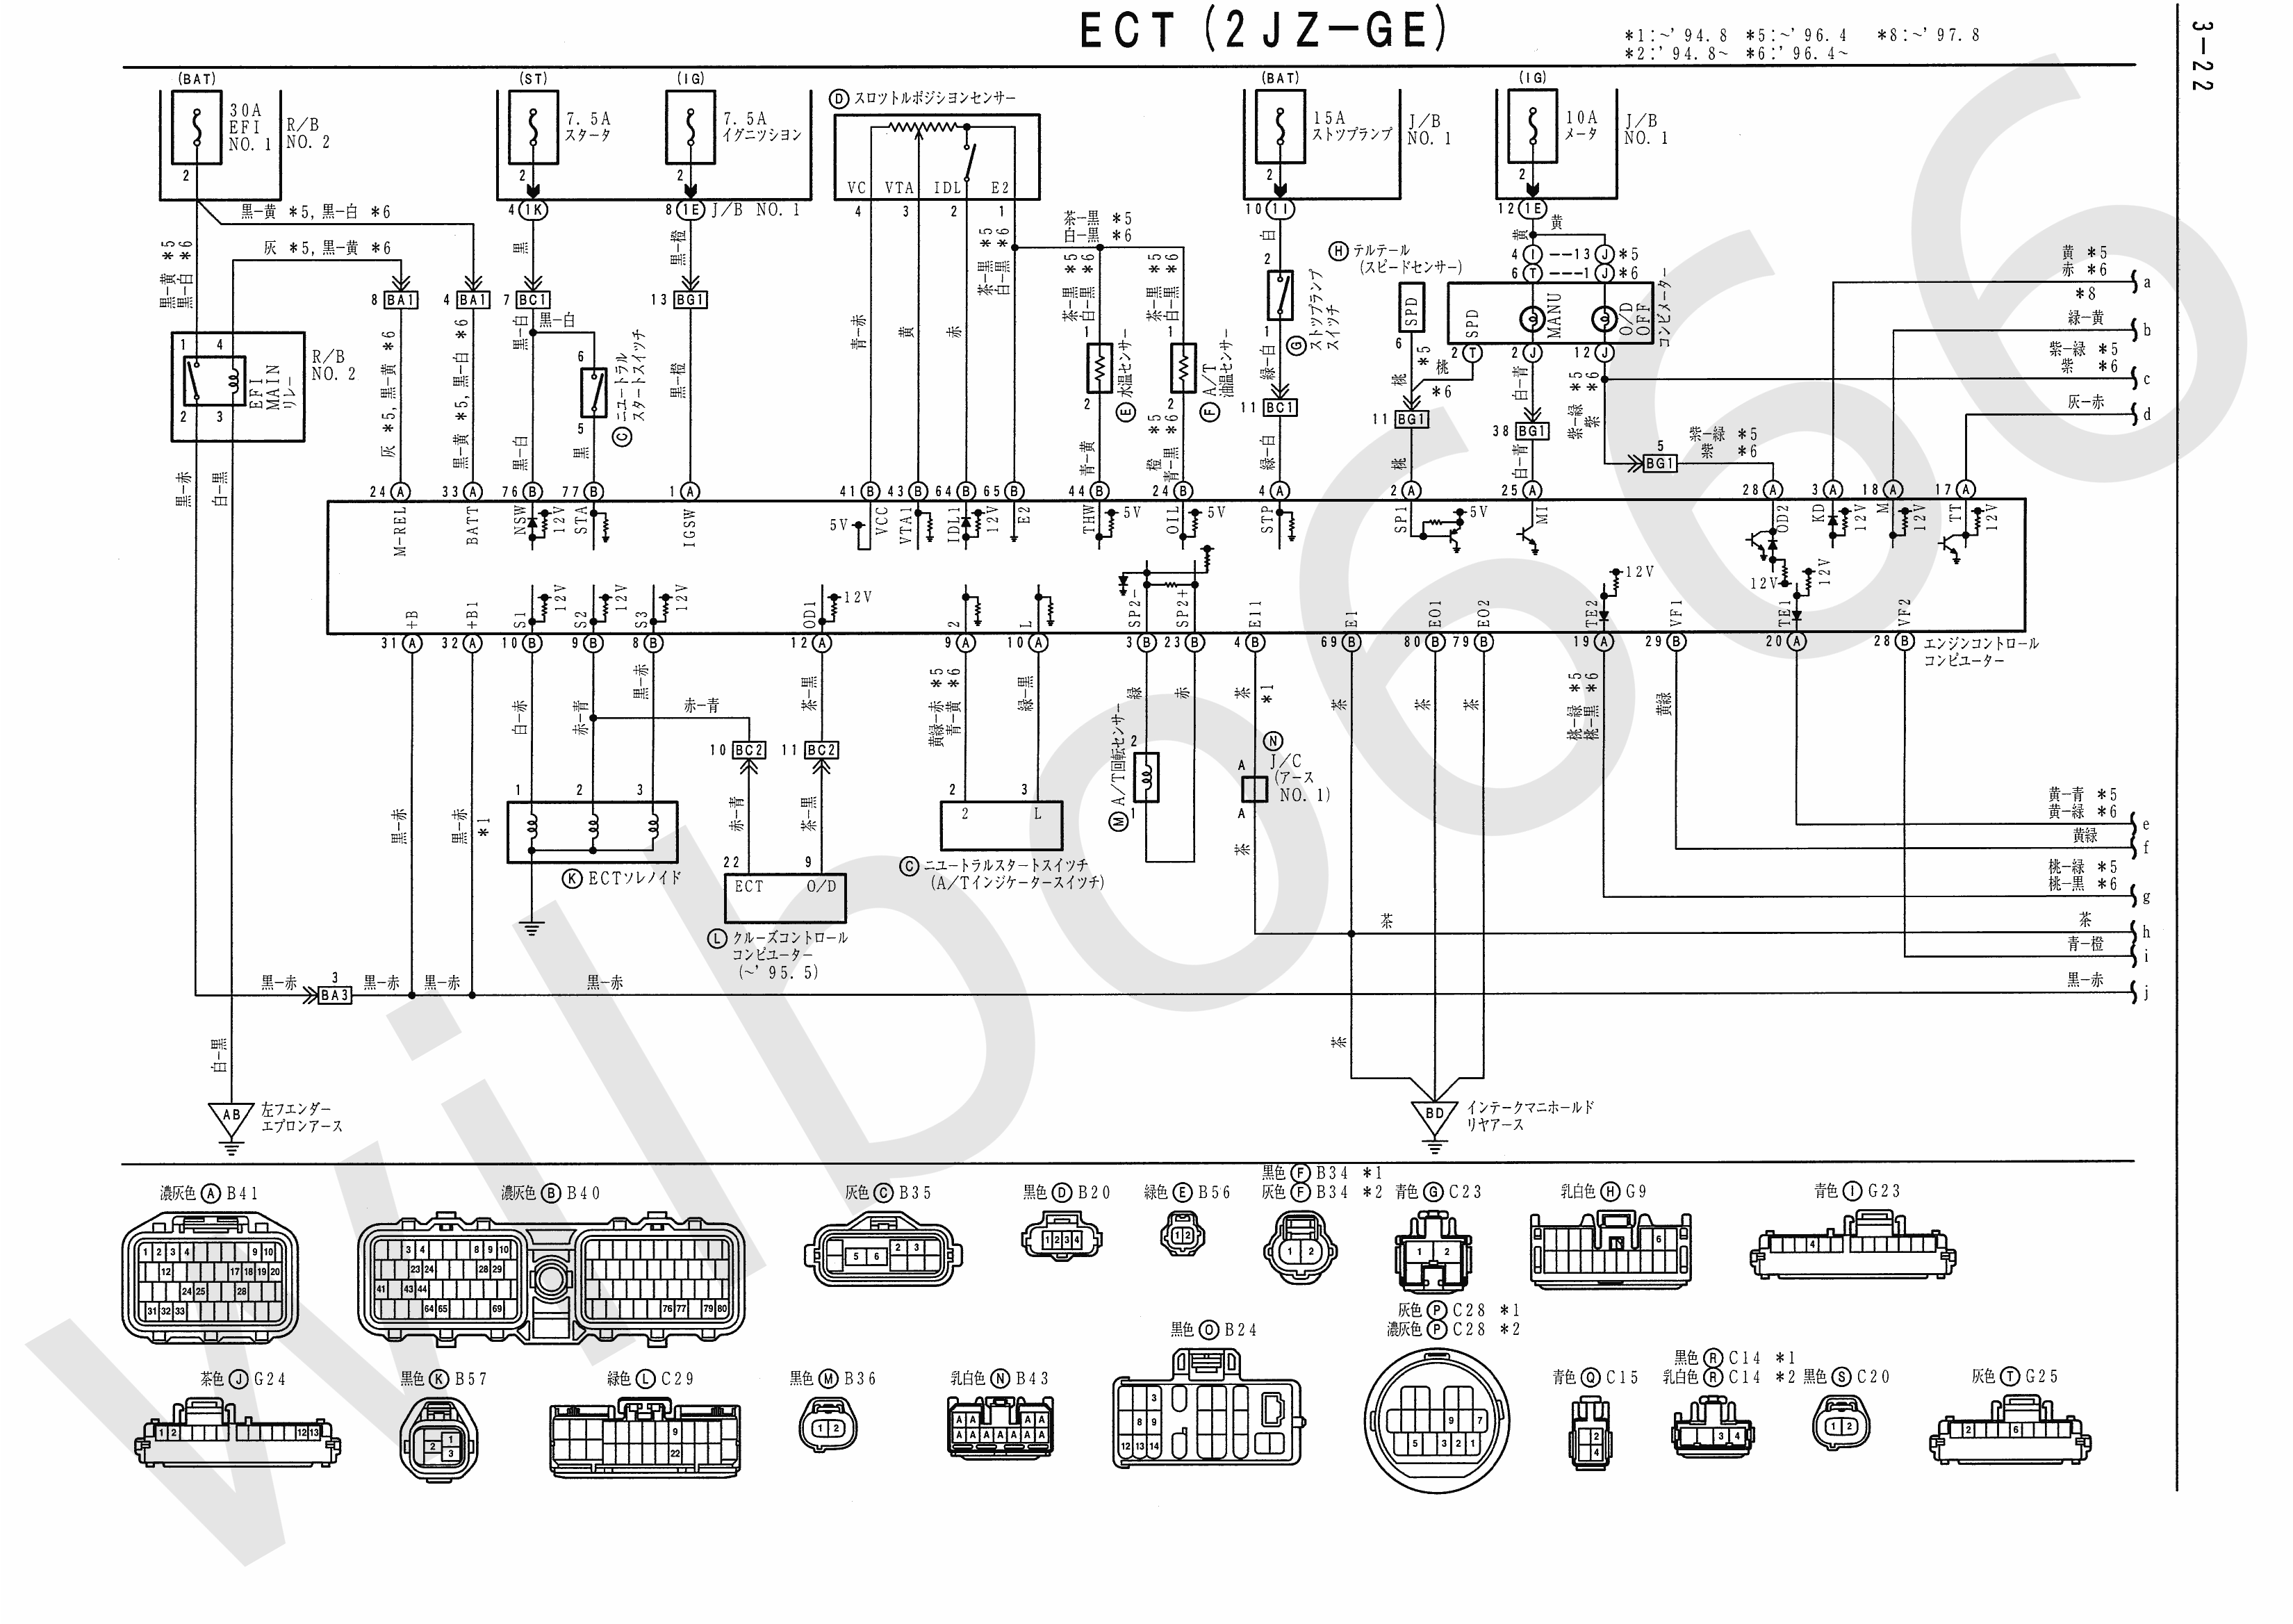 Ecm Wiring Diagram Also Fuel Shut Off Solenoid Wiring Diagram Likewise